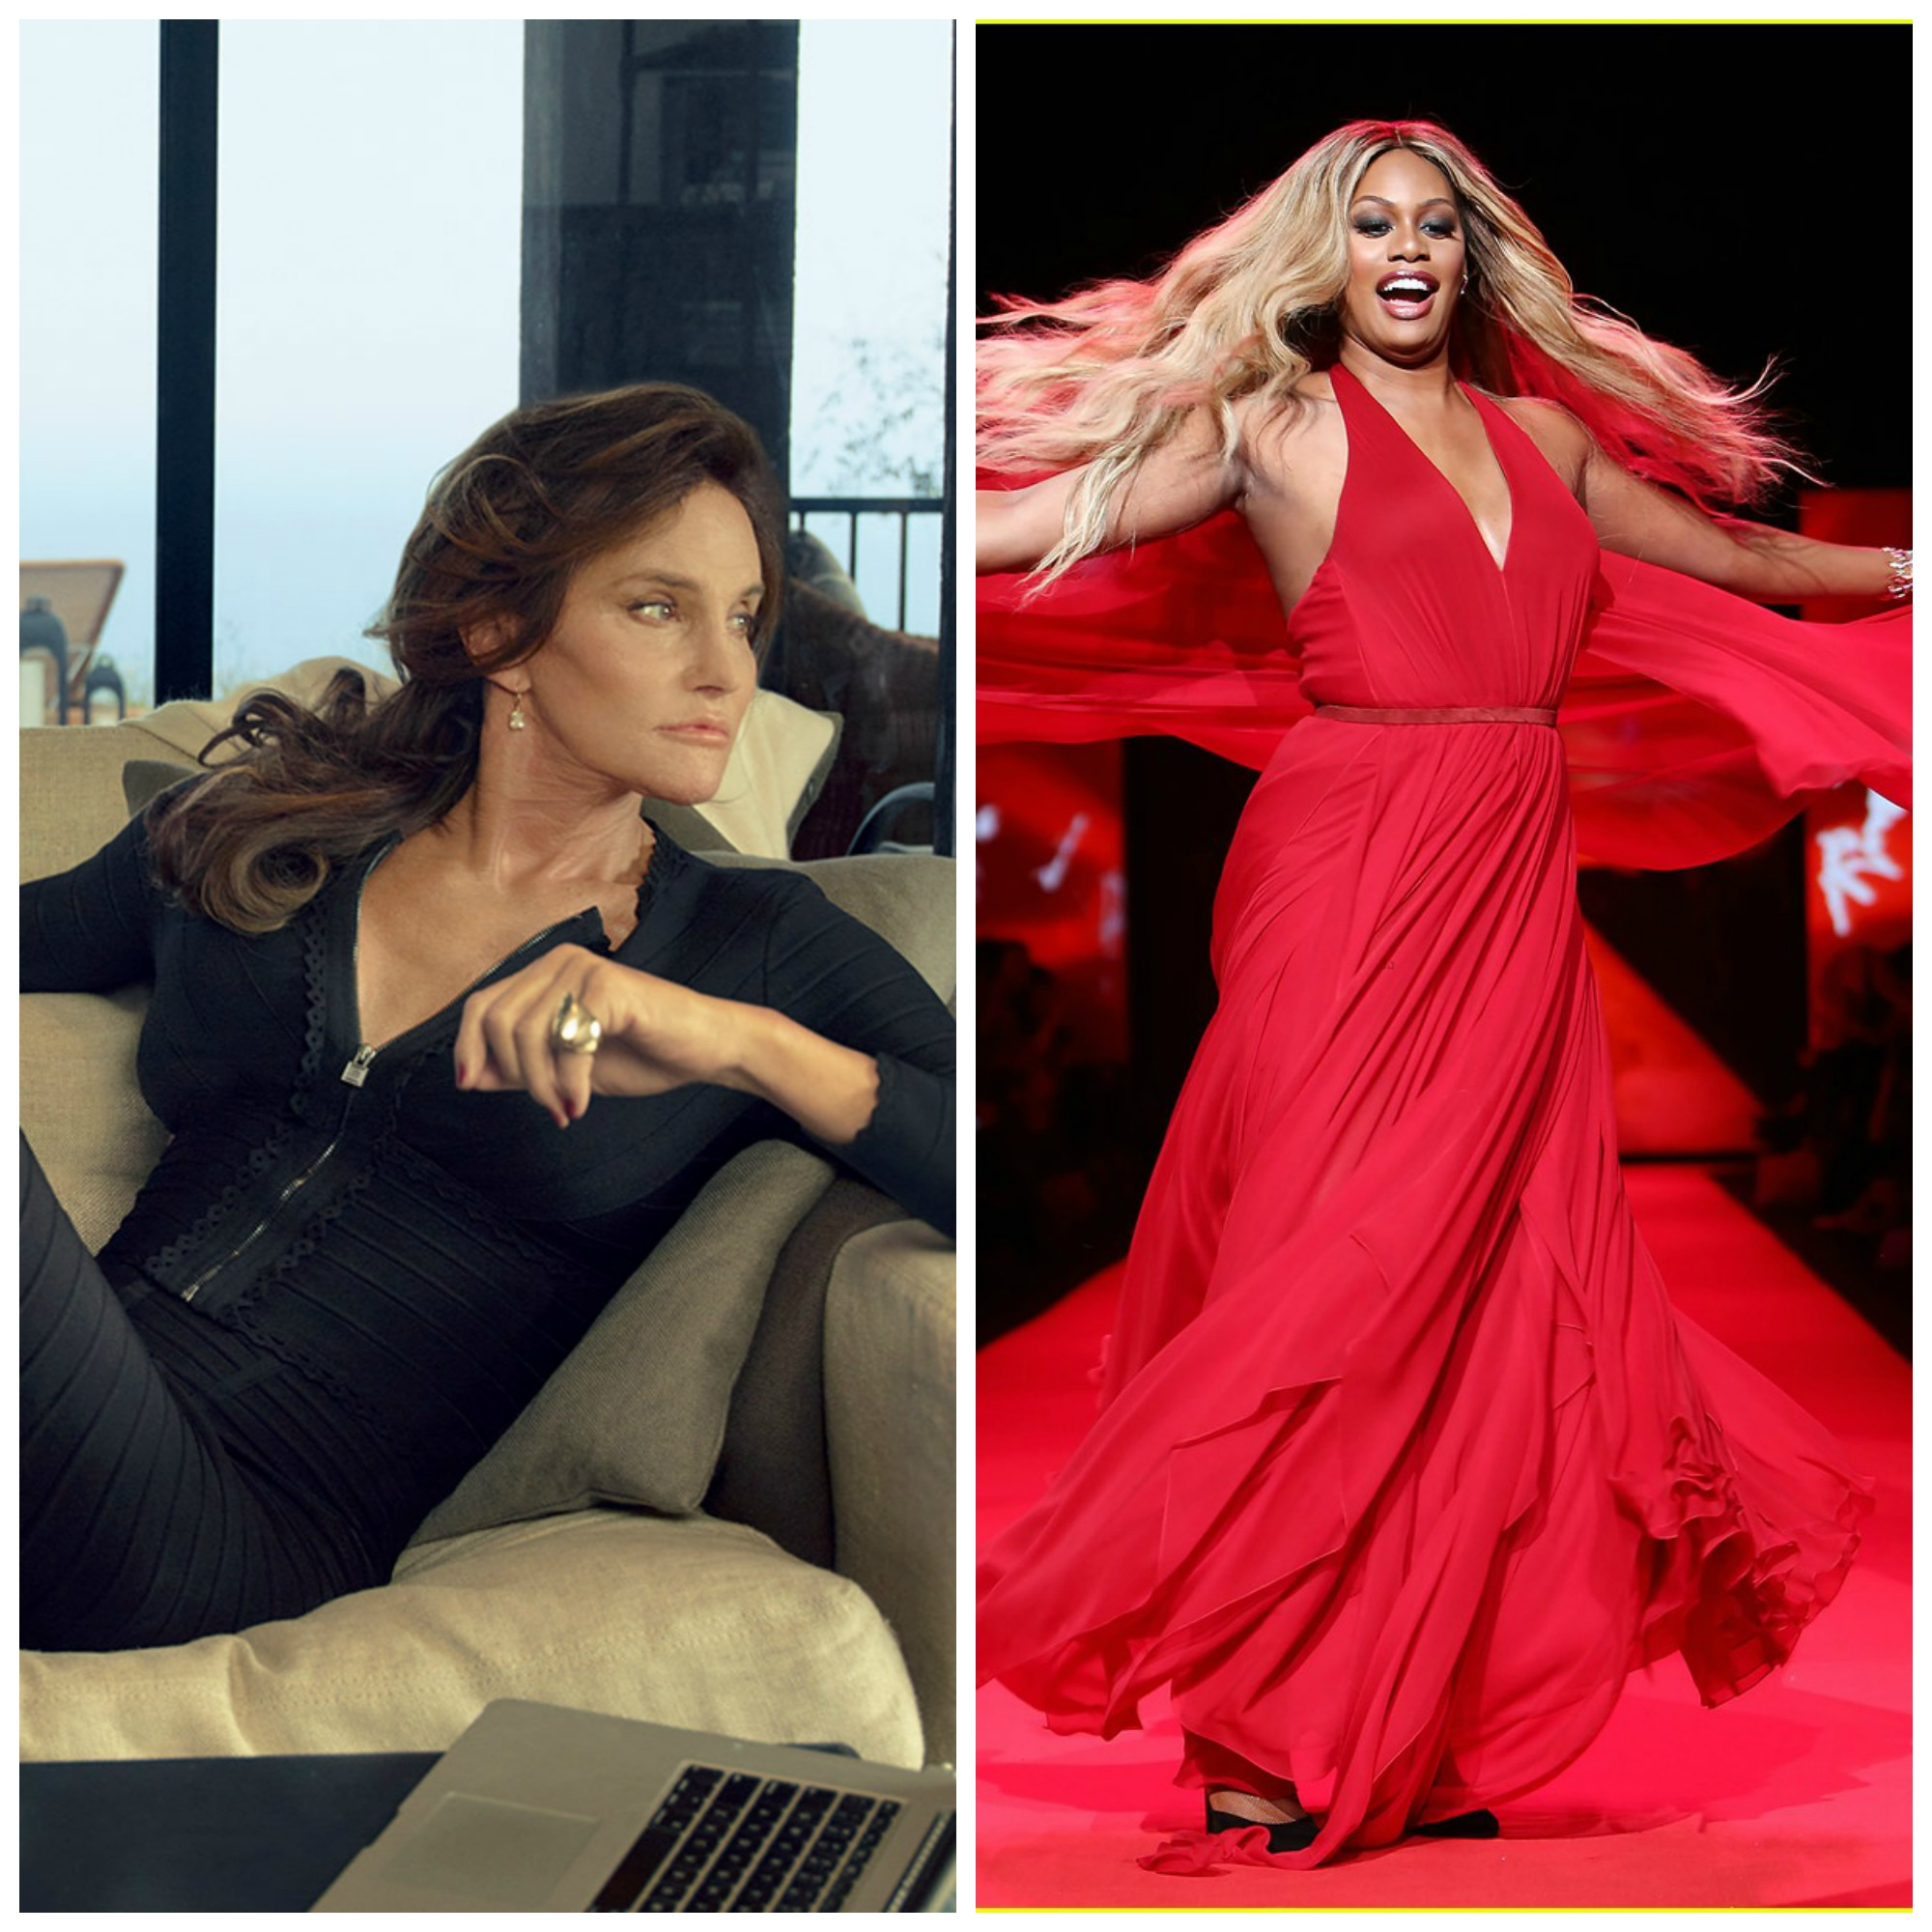 Caitlyn Jenner and Laverne Cox